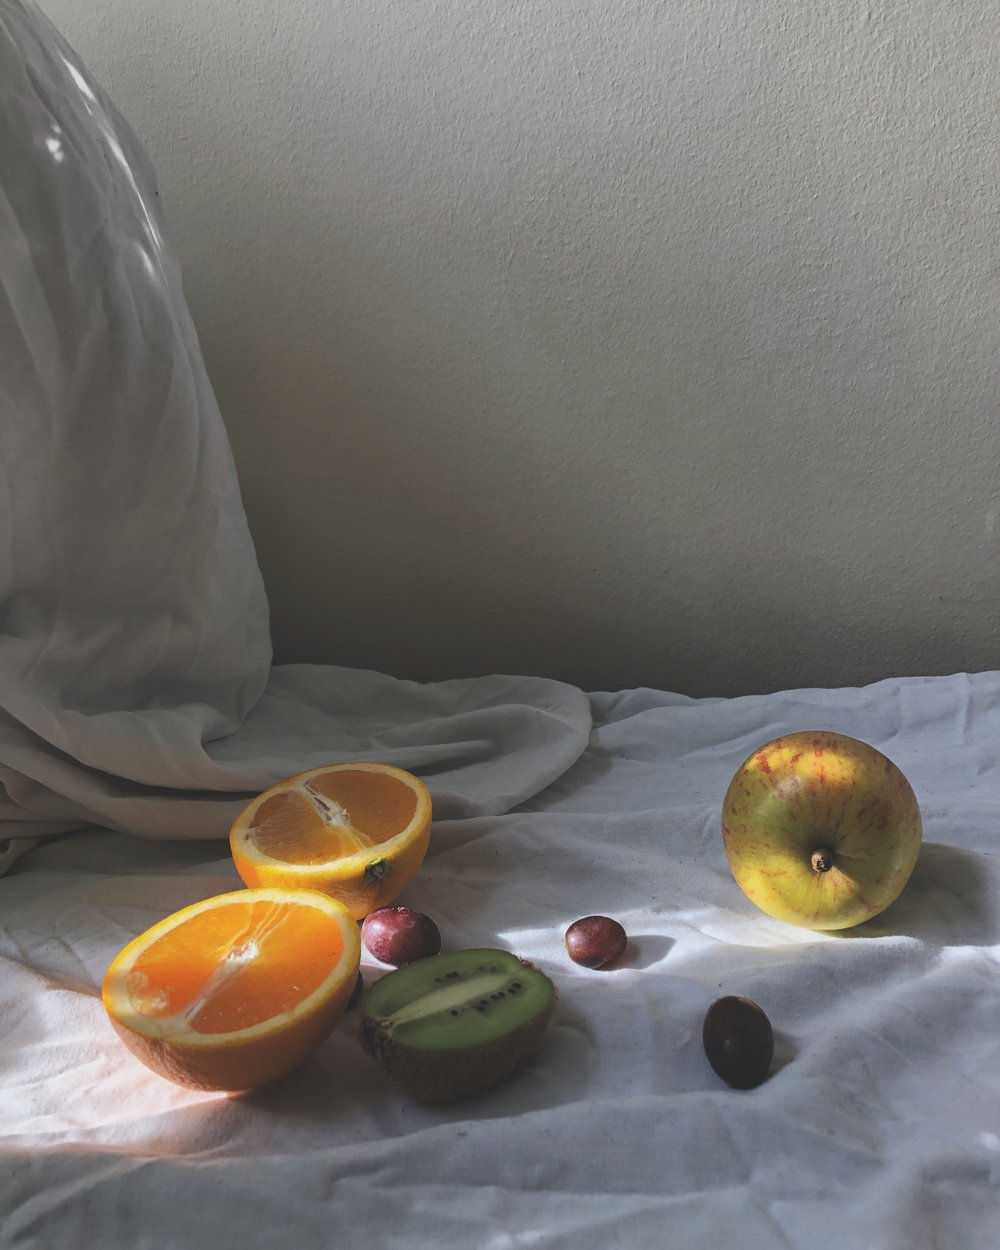 Kimba-Fairtrade-and-Organic-Art-Nude-Clothing-Workshops-Sustainable-Ethical-Europa-Top-Fashion-Cotton-Still-life-Female-Gaze